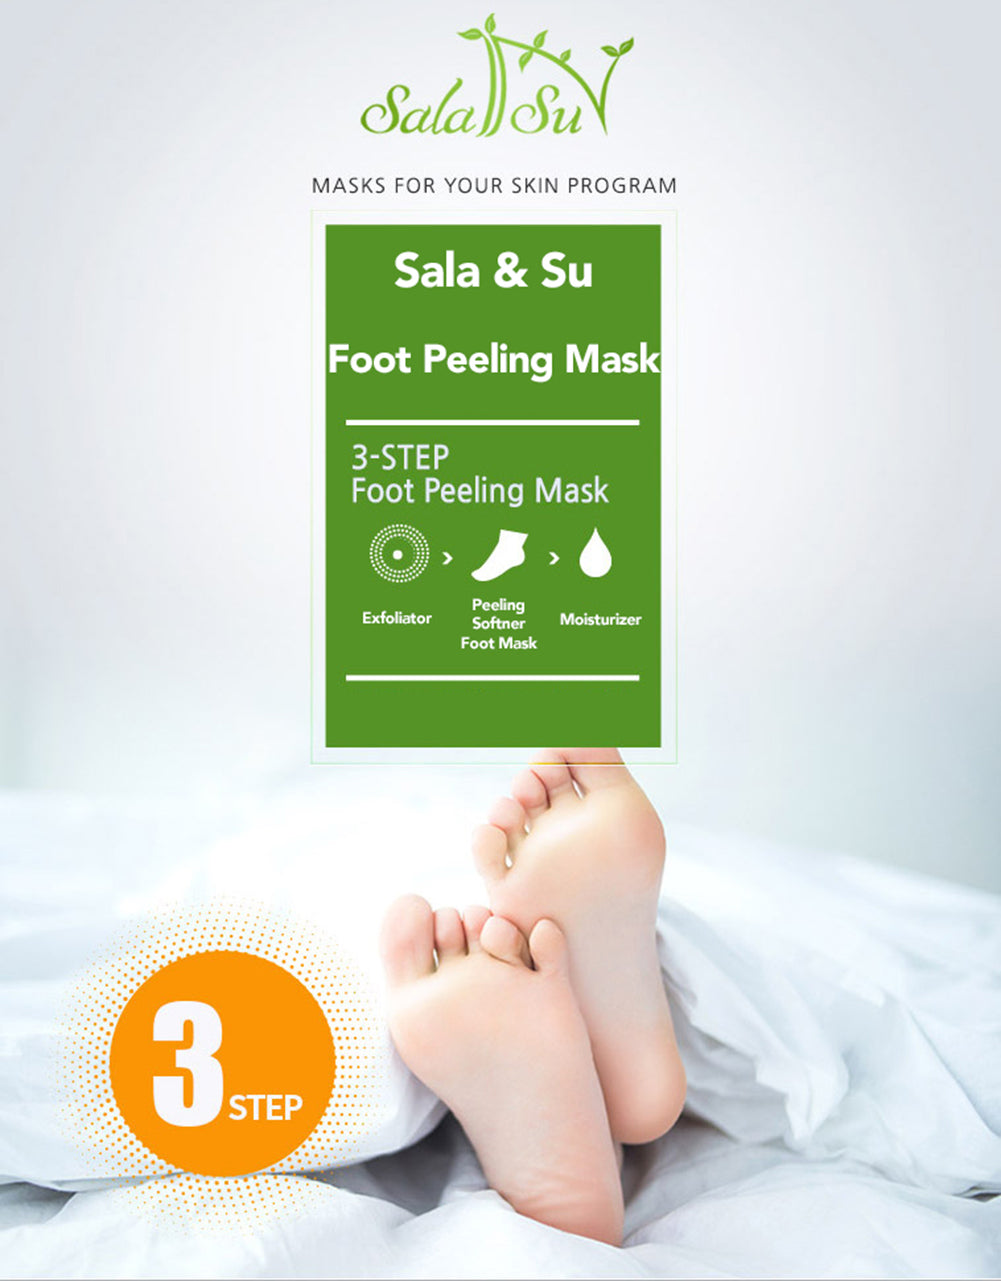 Sala&Su Foot Peeling Mask Product Description 1